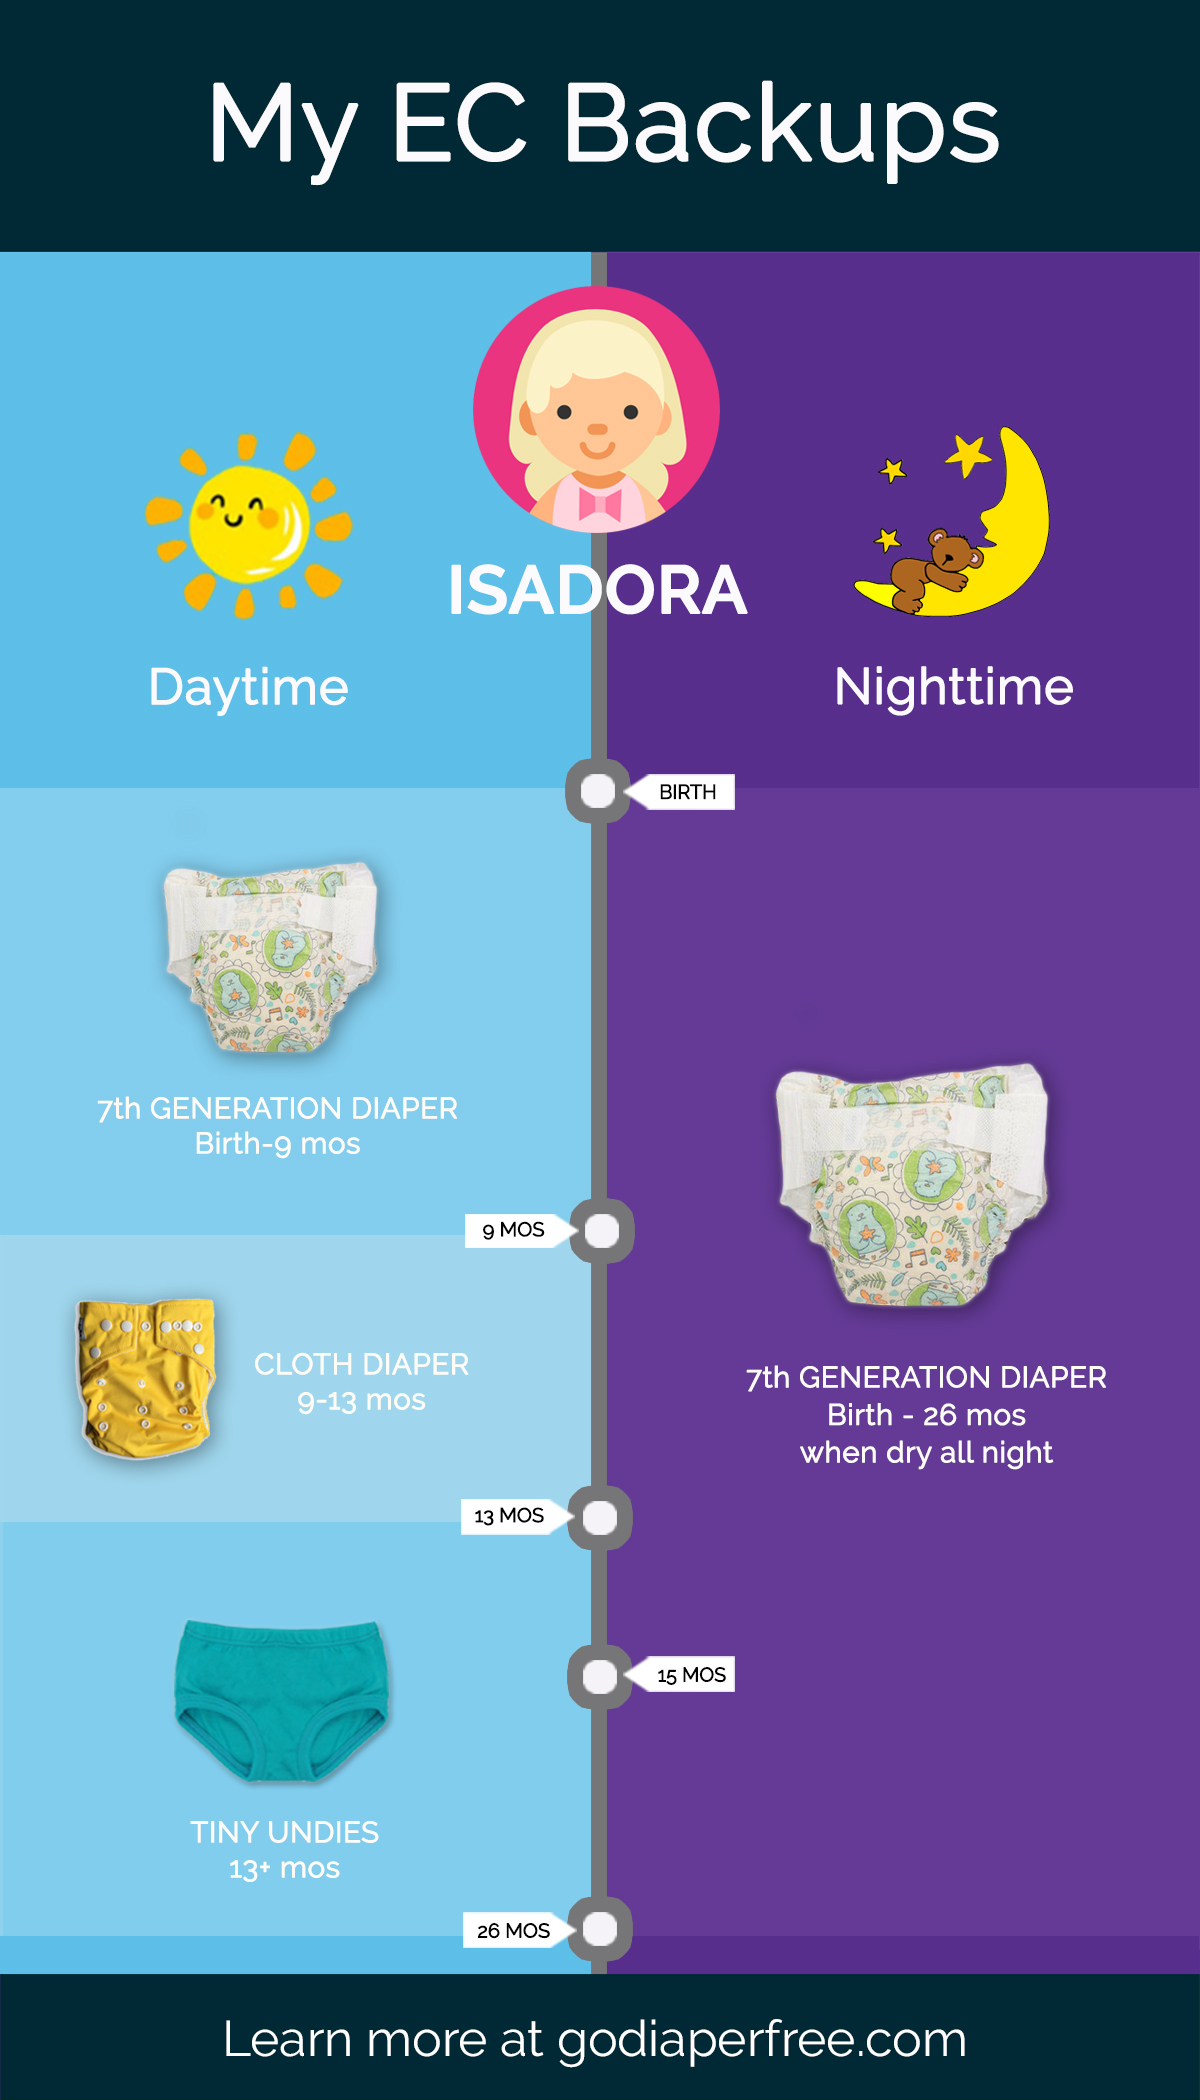 daytime and nighttime diaper backups for baby #2